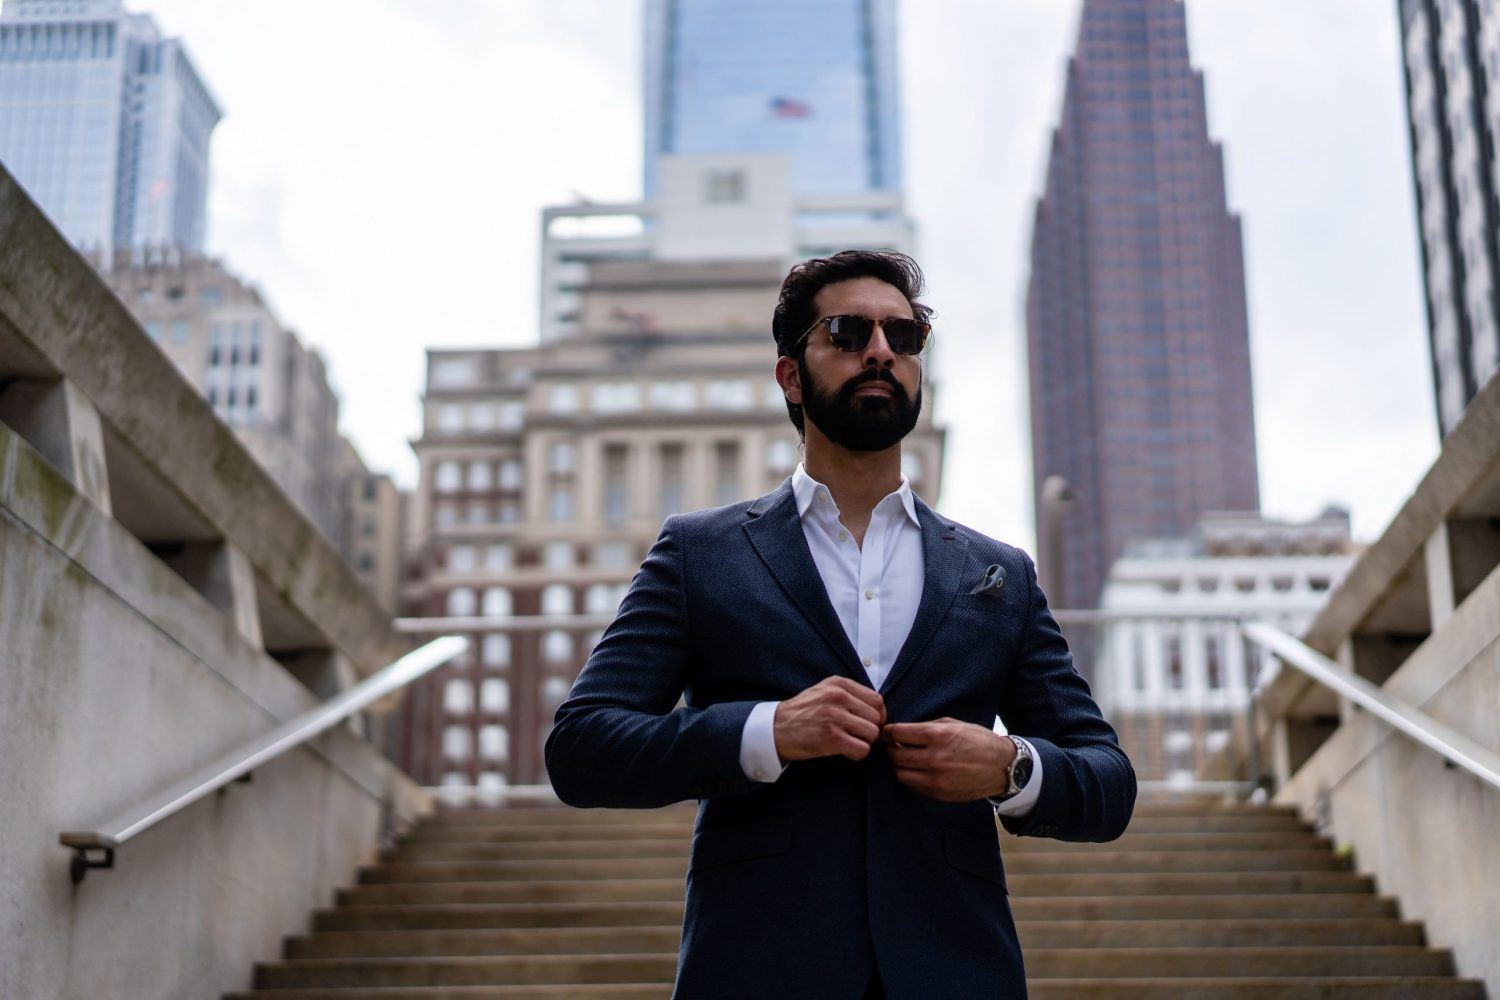 Commerical model in philly male wearing sunglasses